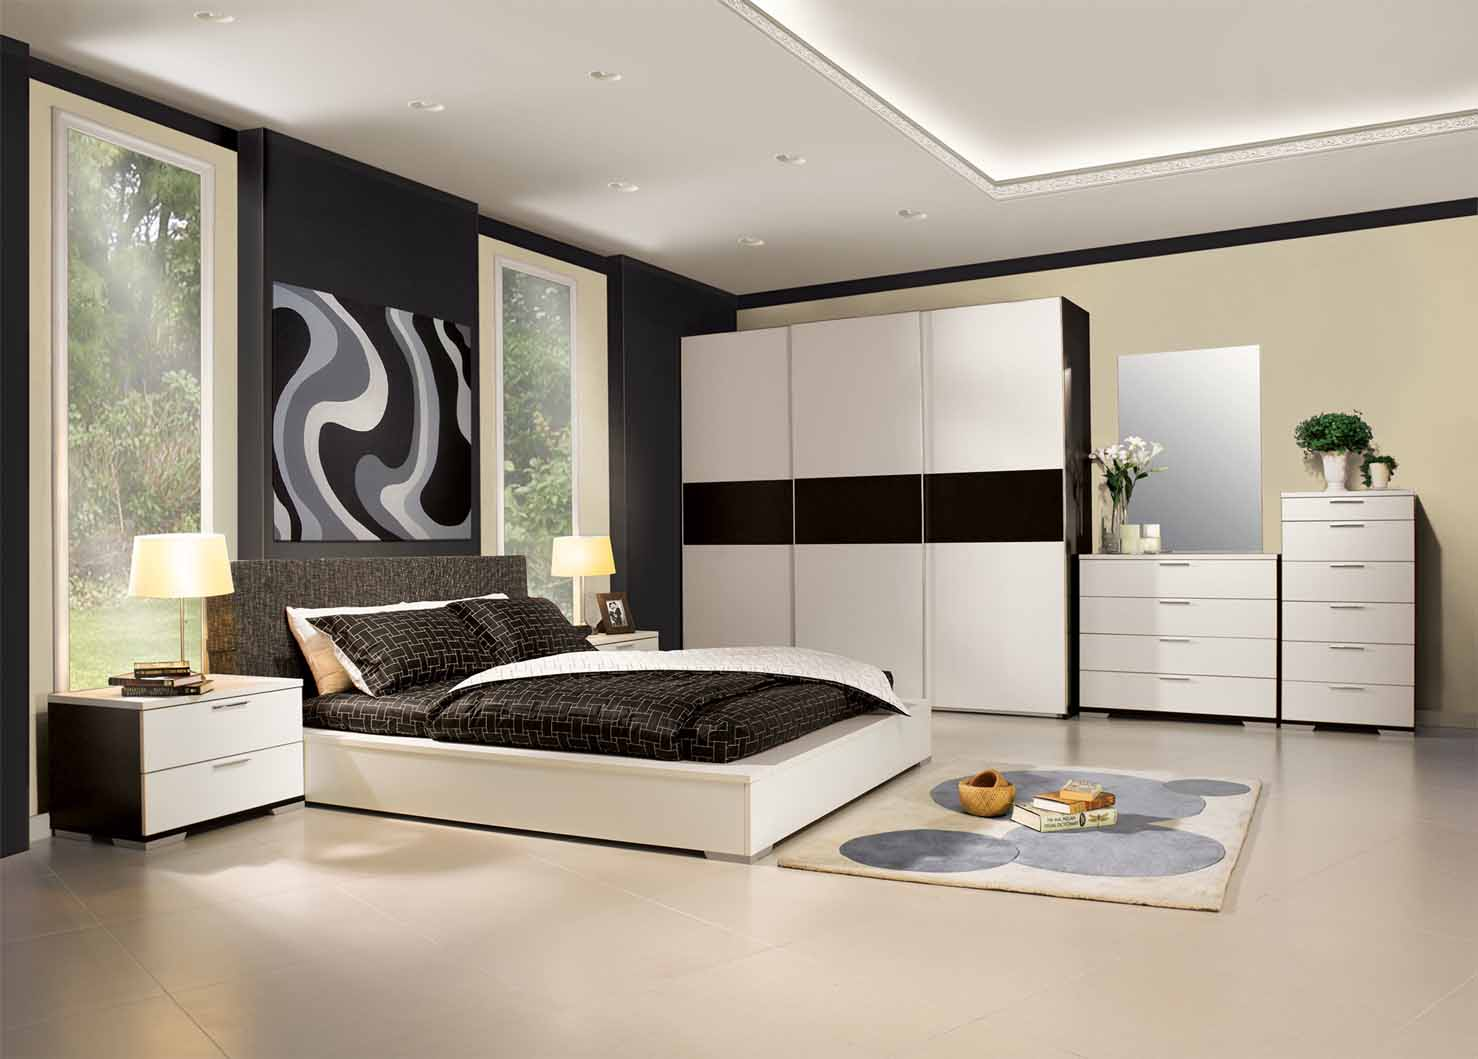 Home interior designs modern bedroom ideas for Bedroom picture ideas